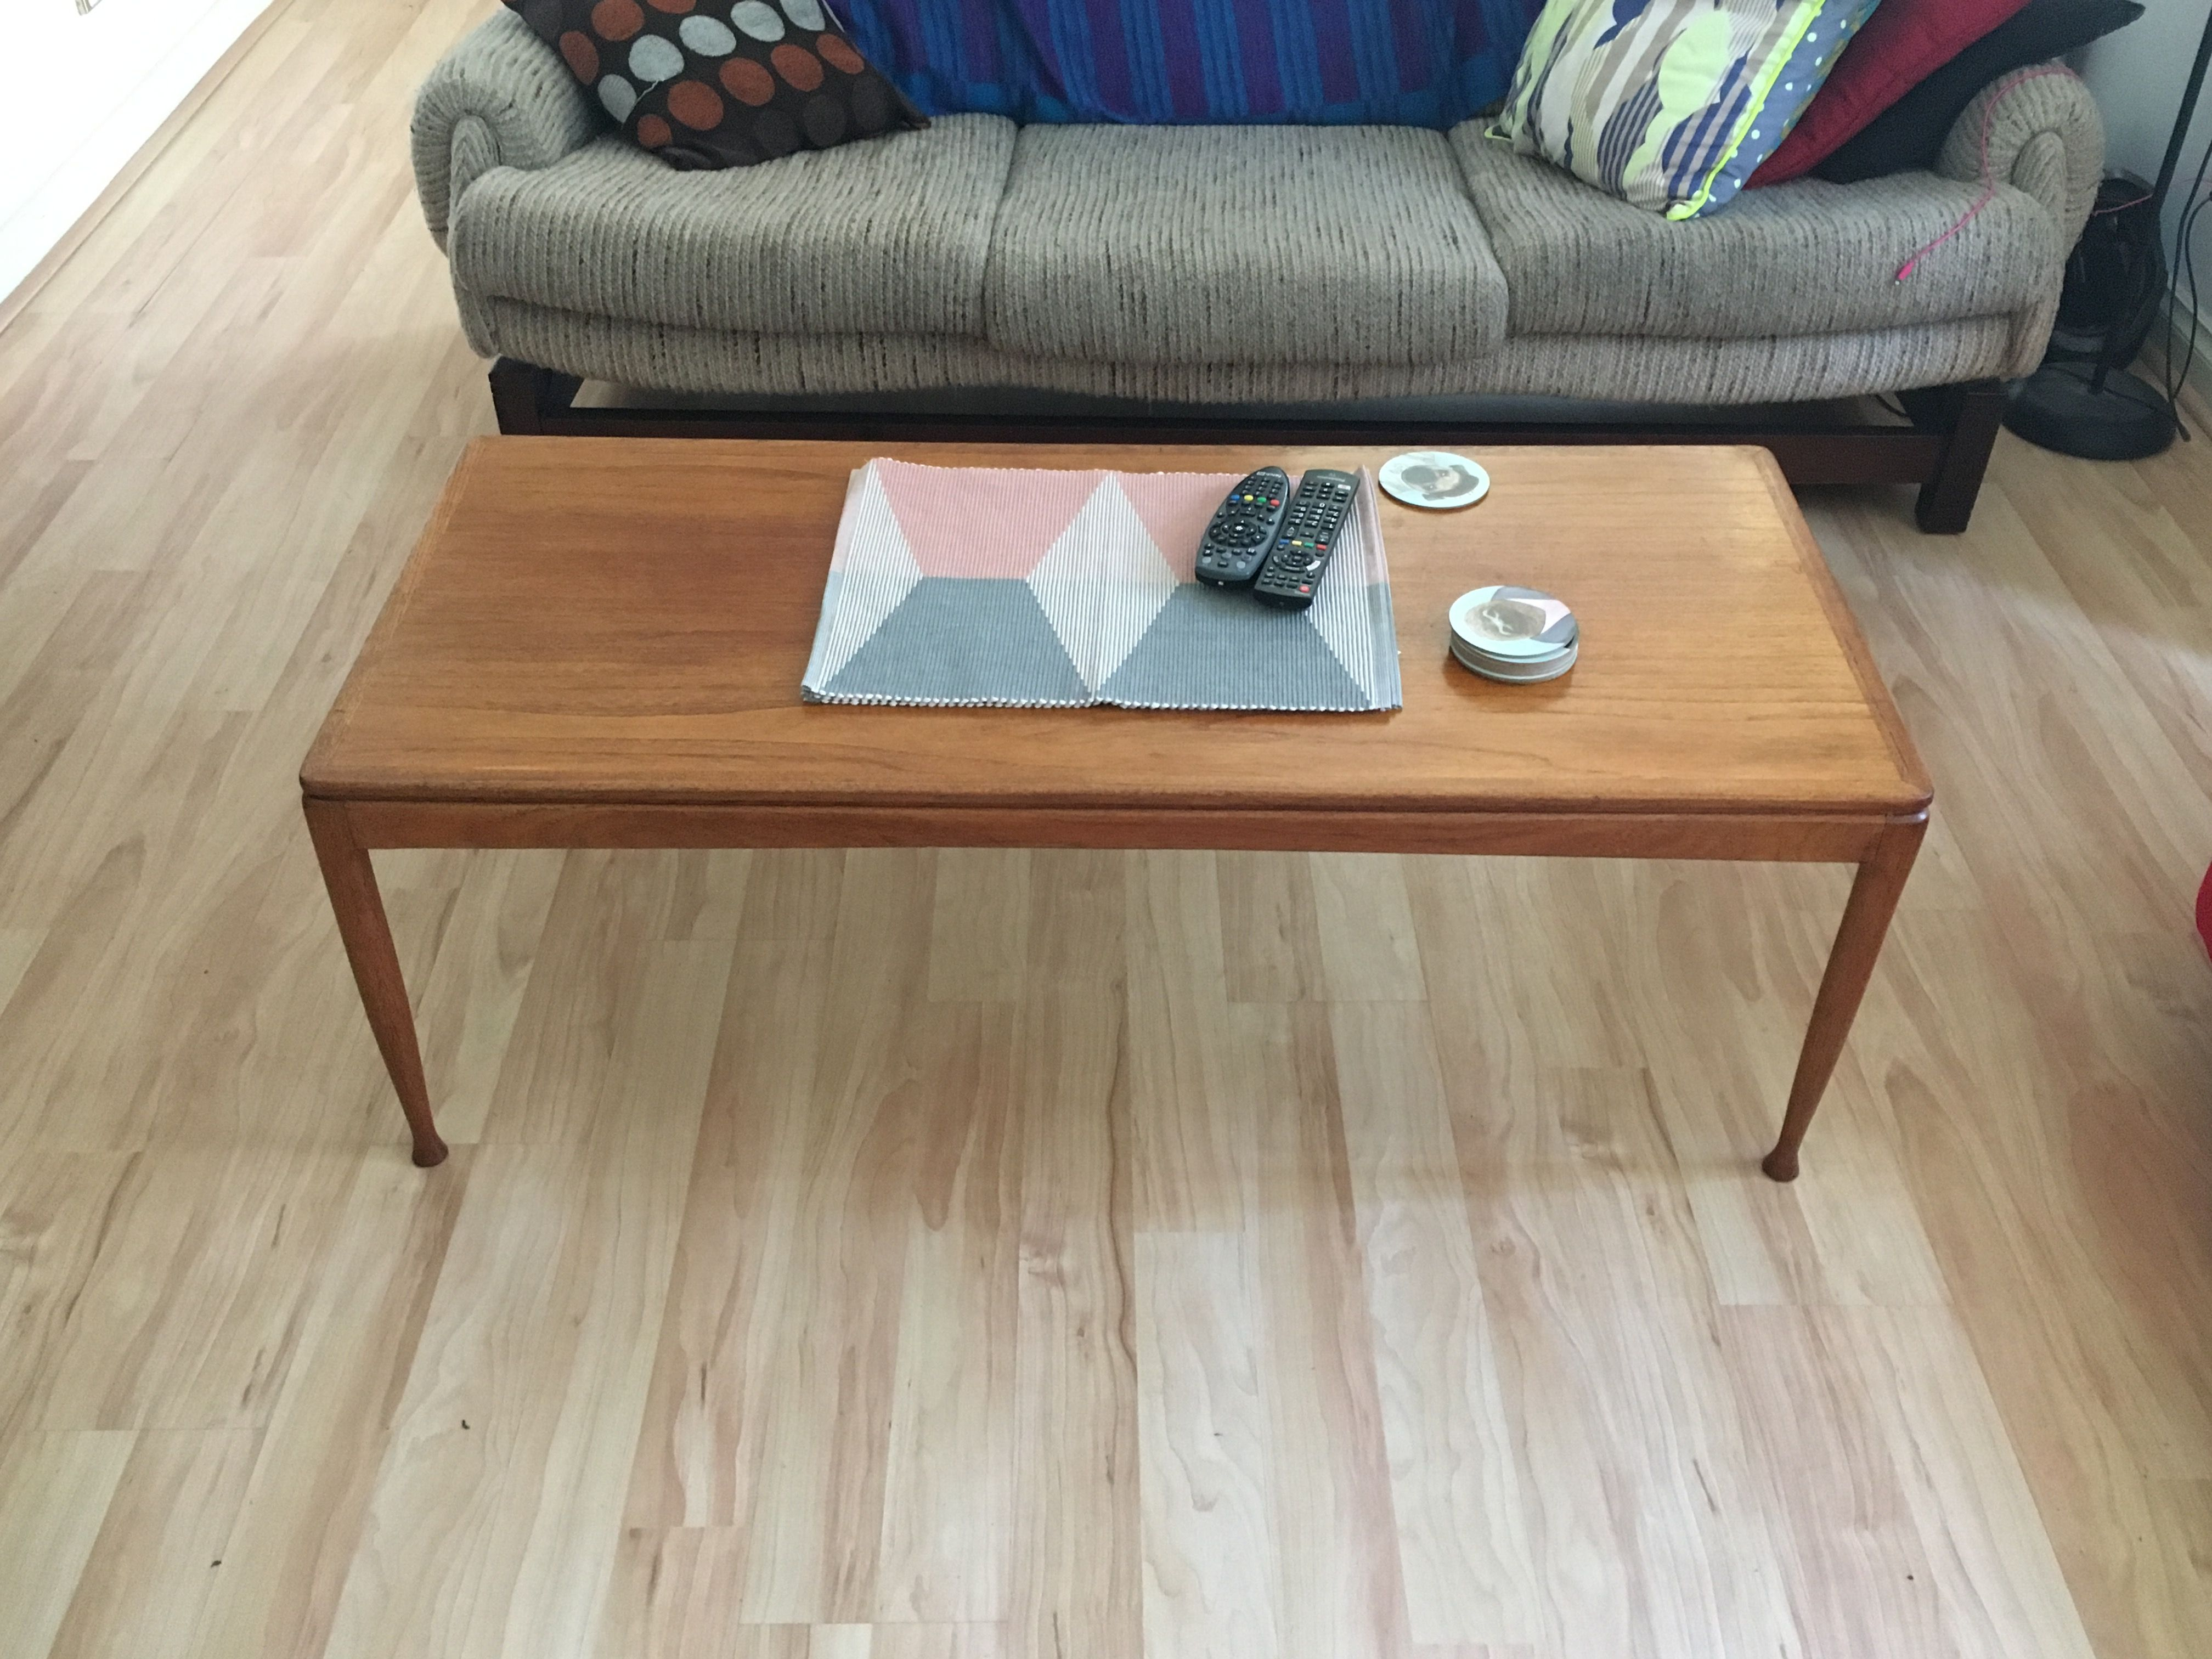 Pin By Paul Graham On Furniture For Me Coffee Table Furniture Decor [ 3024 x 4032 Pixel ]